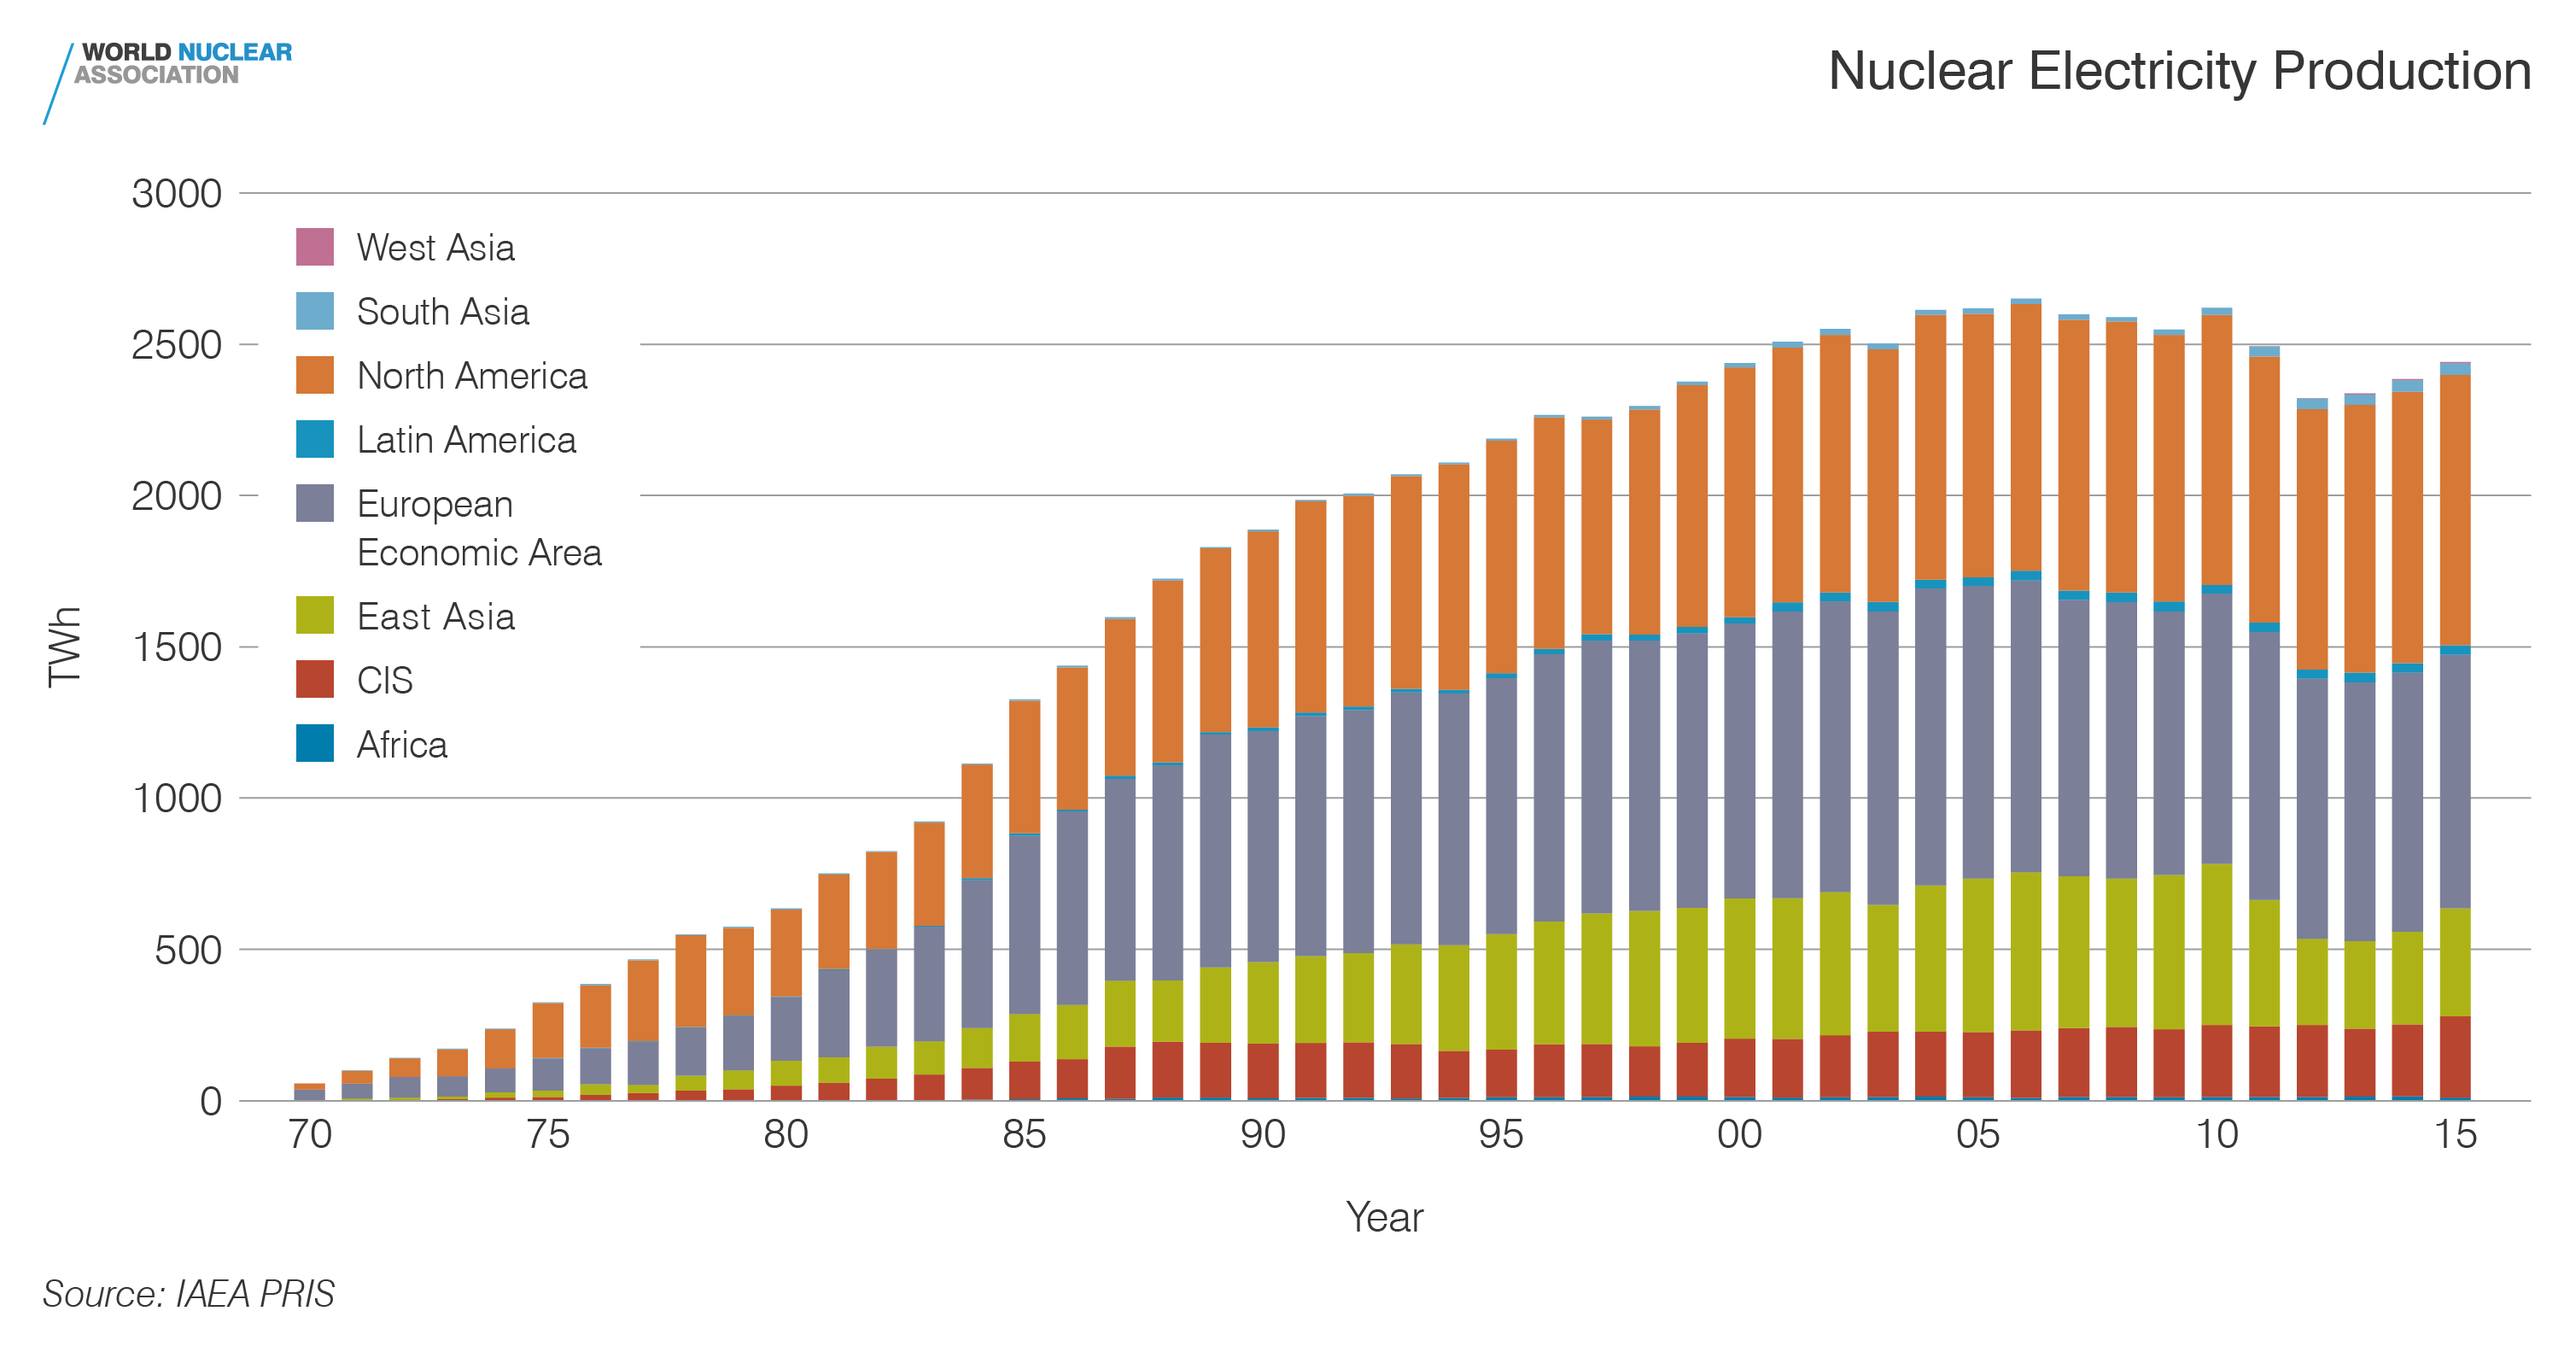 Nuclear electricity production by region